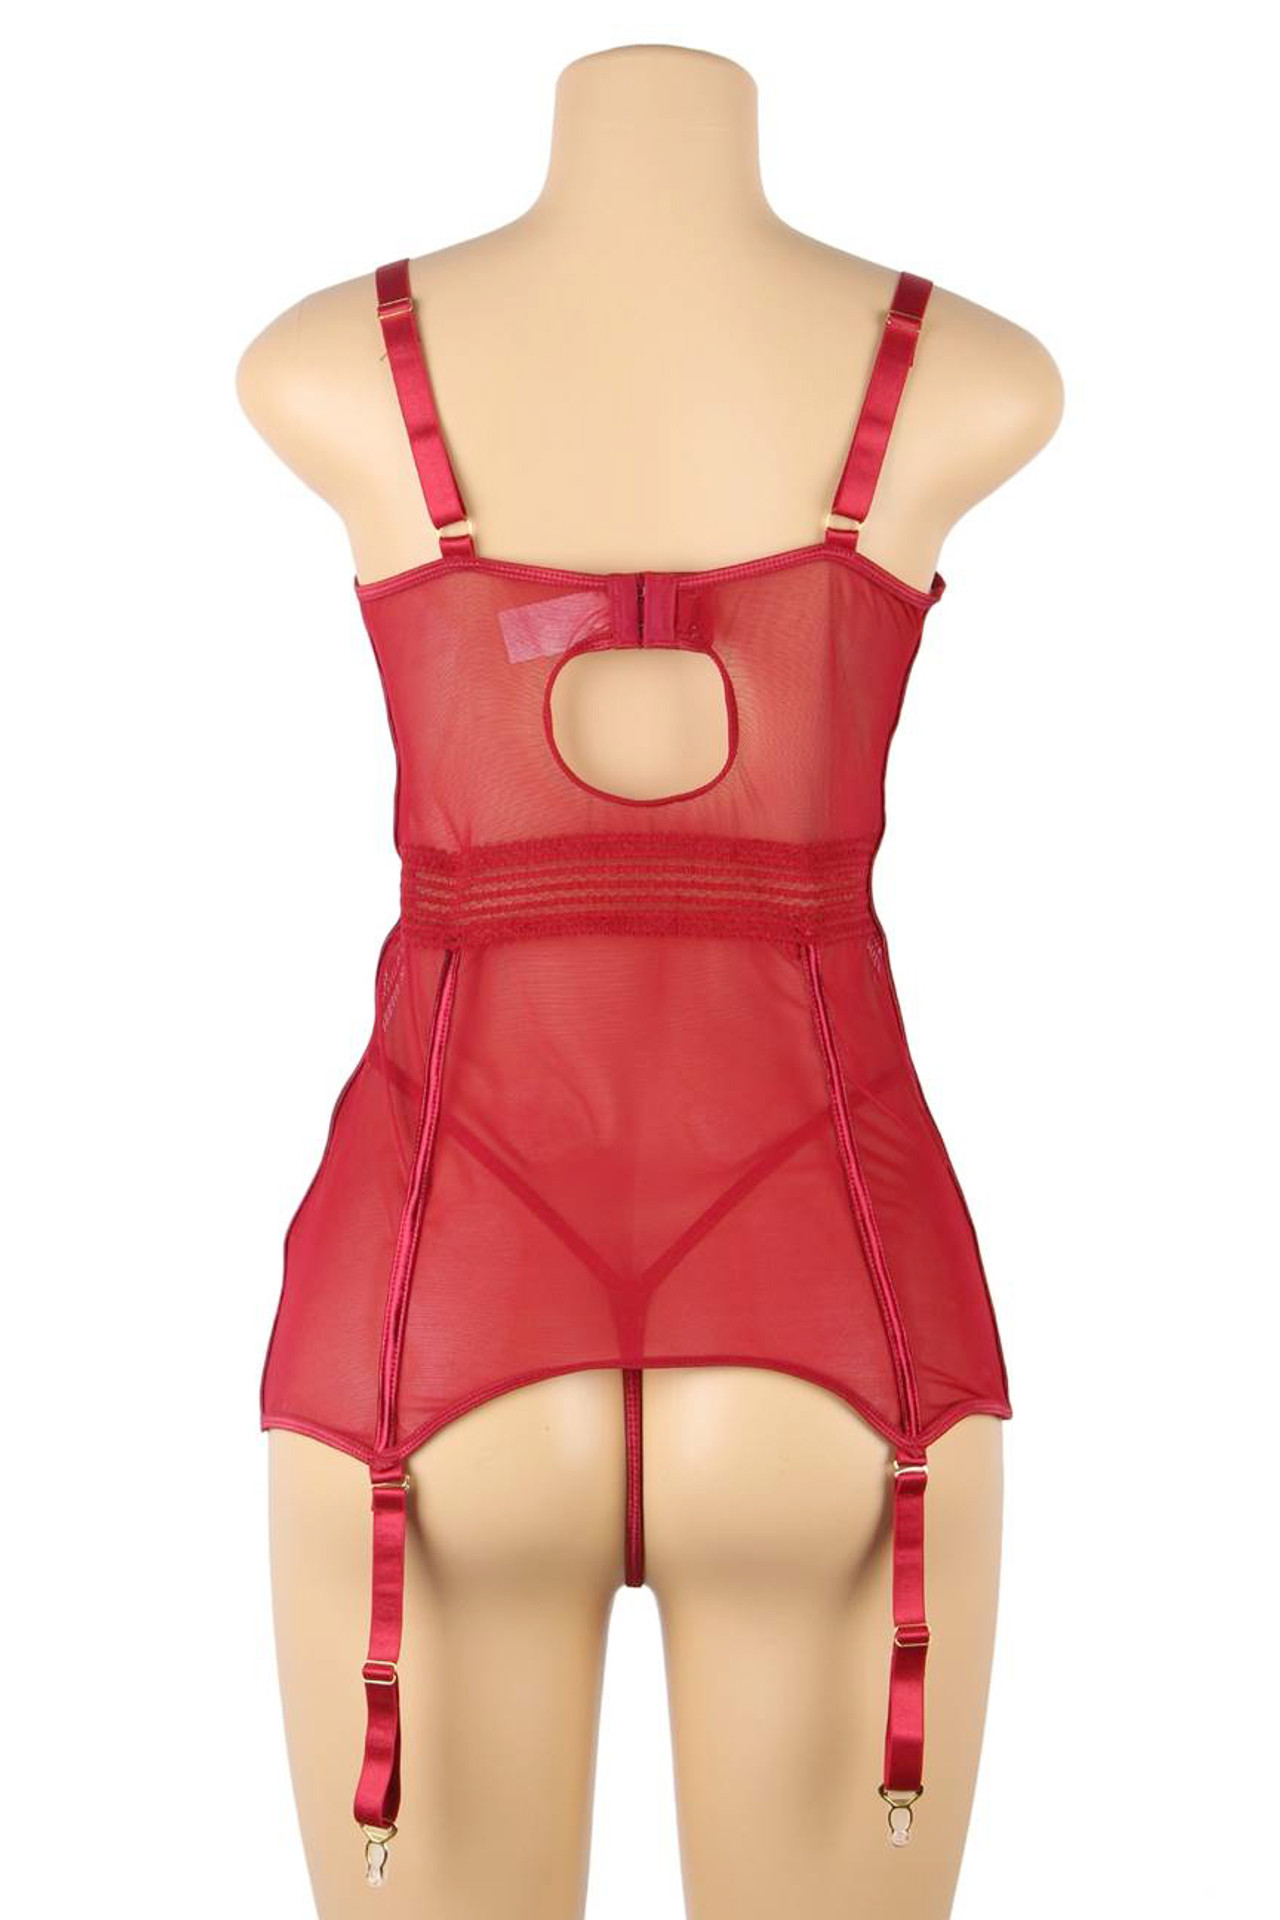 Alessandra Red Lace Mesh Garter Chemise Plus Size